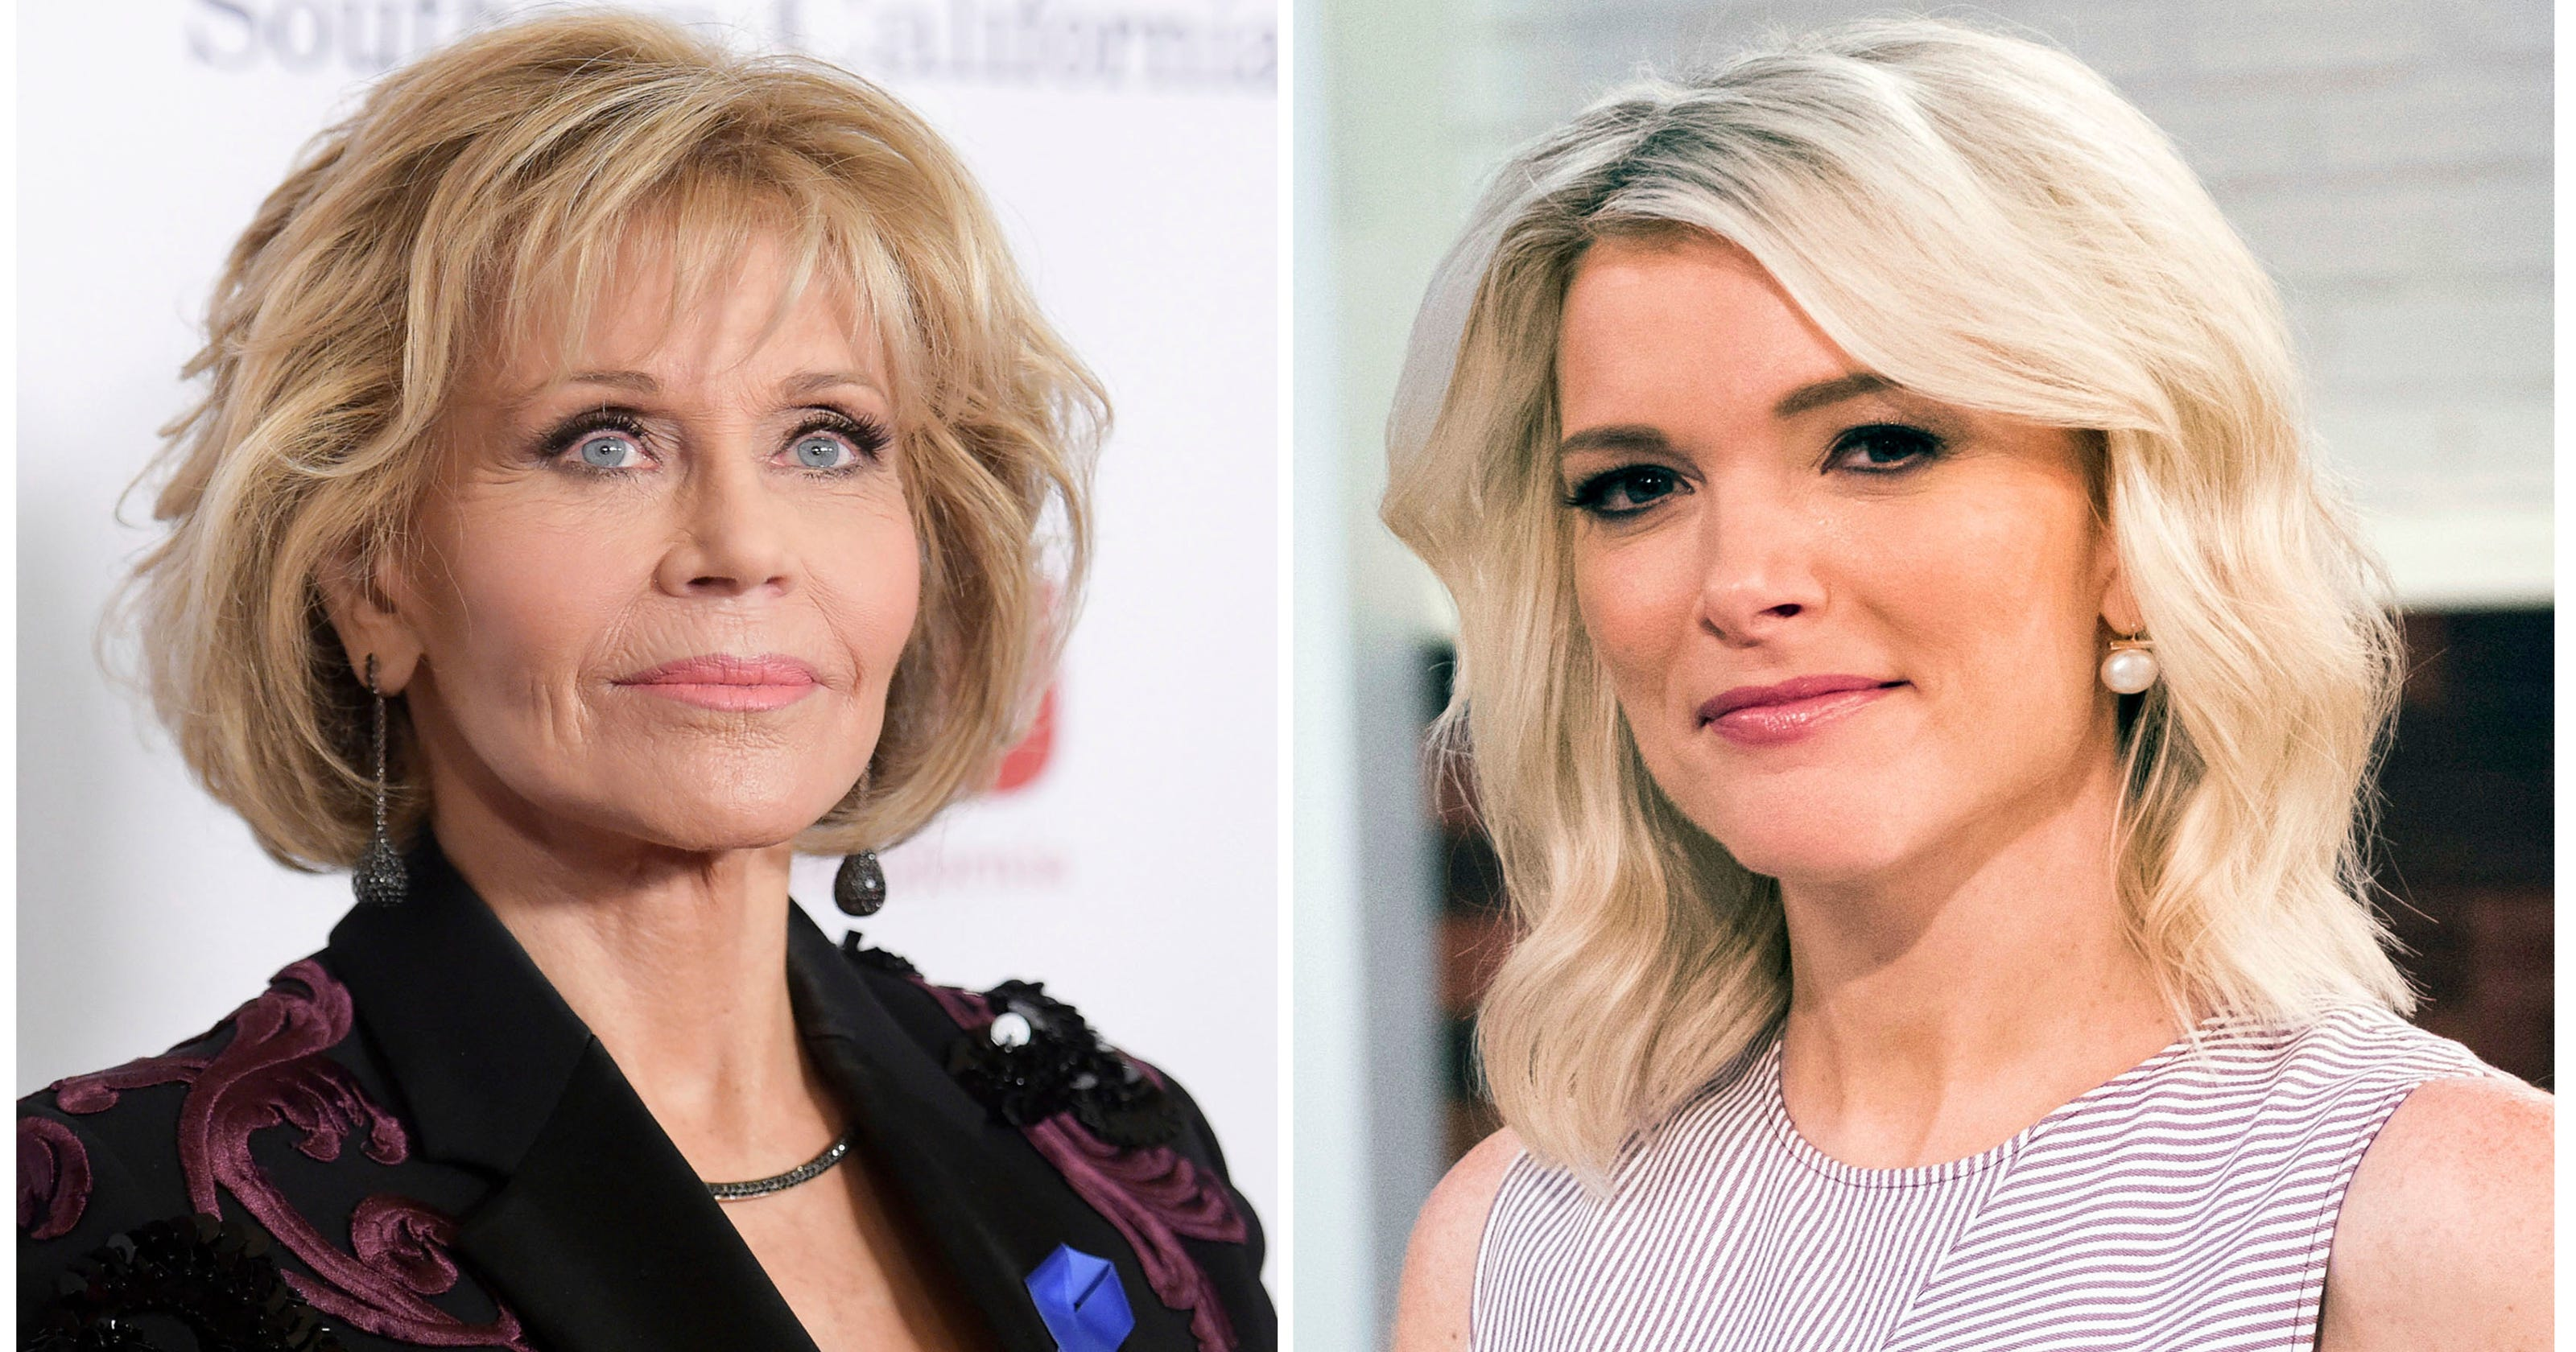 Megyn Kelly Says She Regrets Awkward Jane Fonda Interview